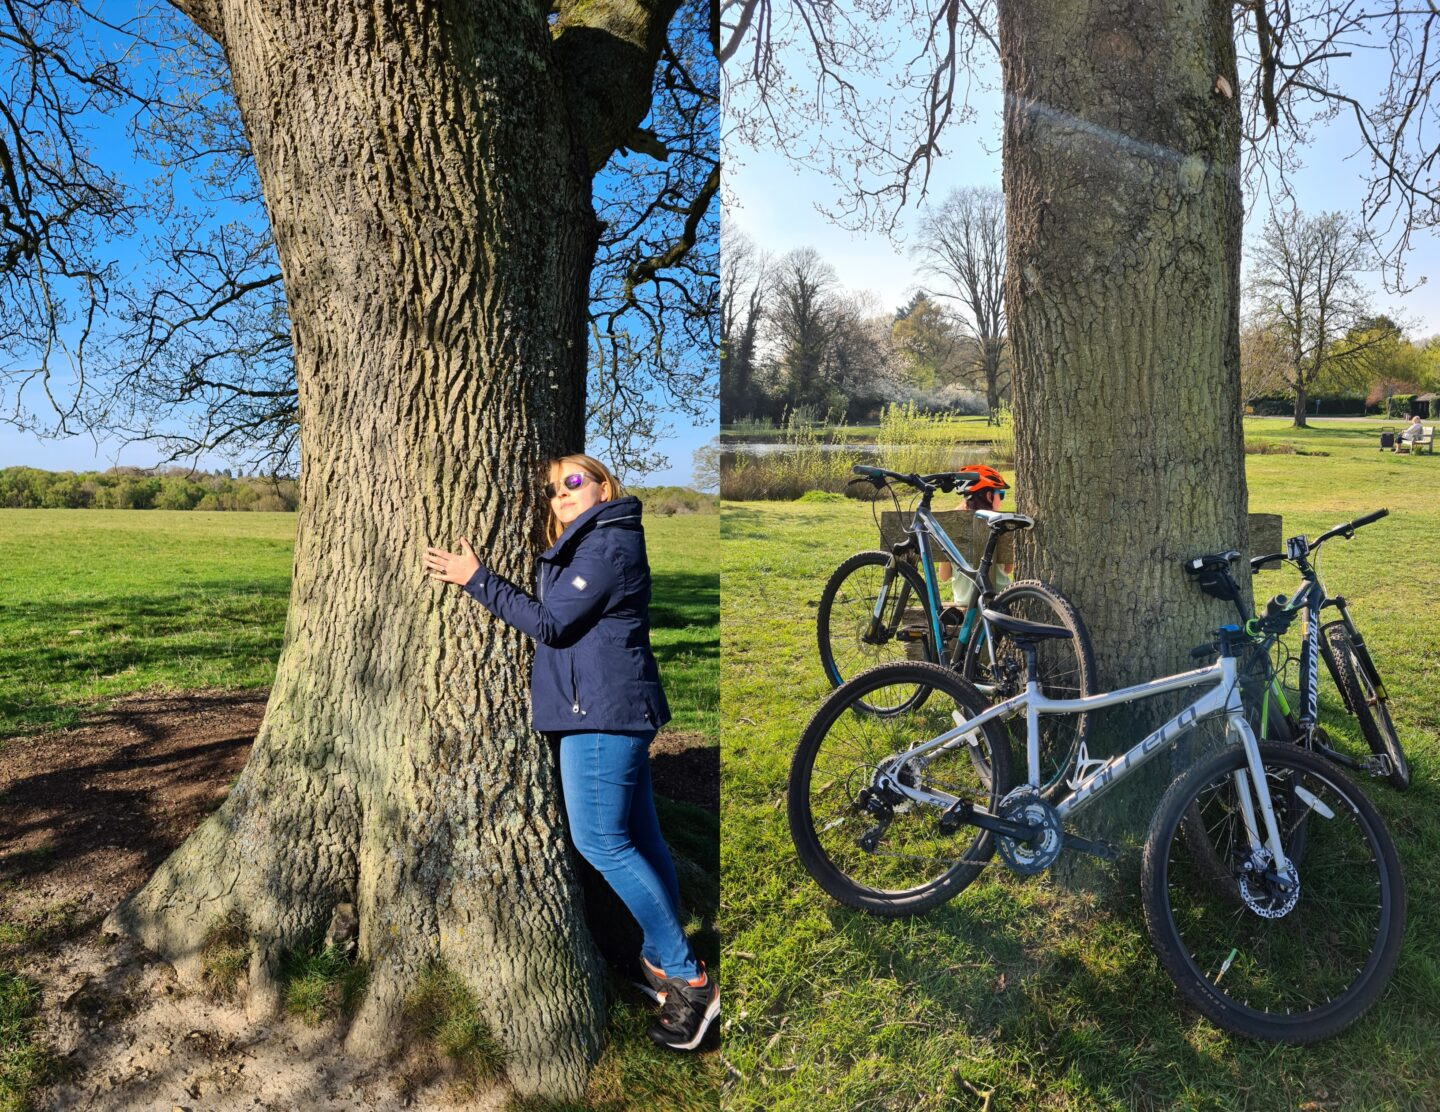 Hugging a tree on left, bikes on right